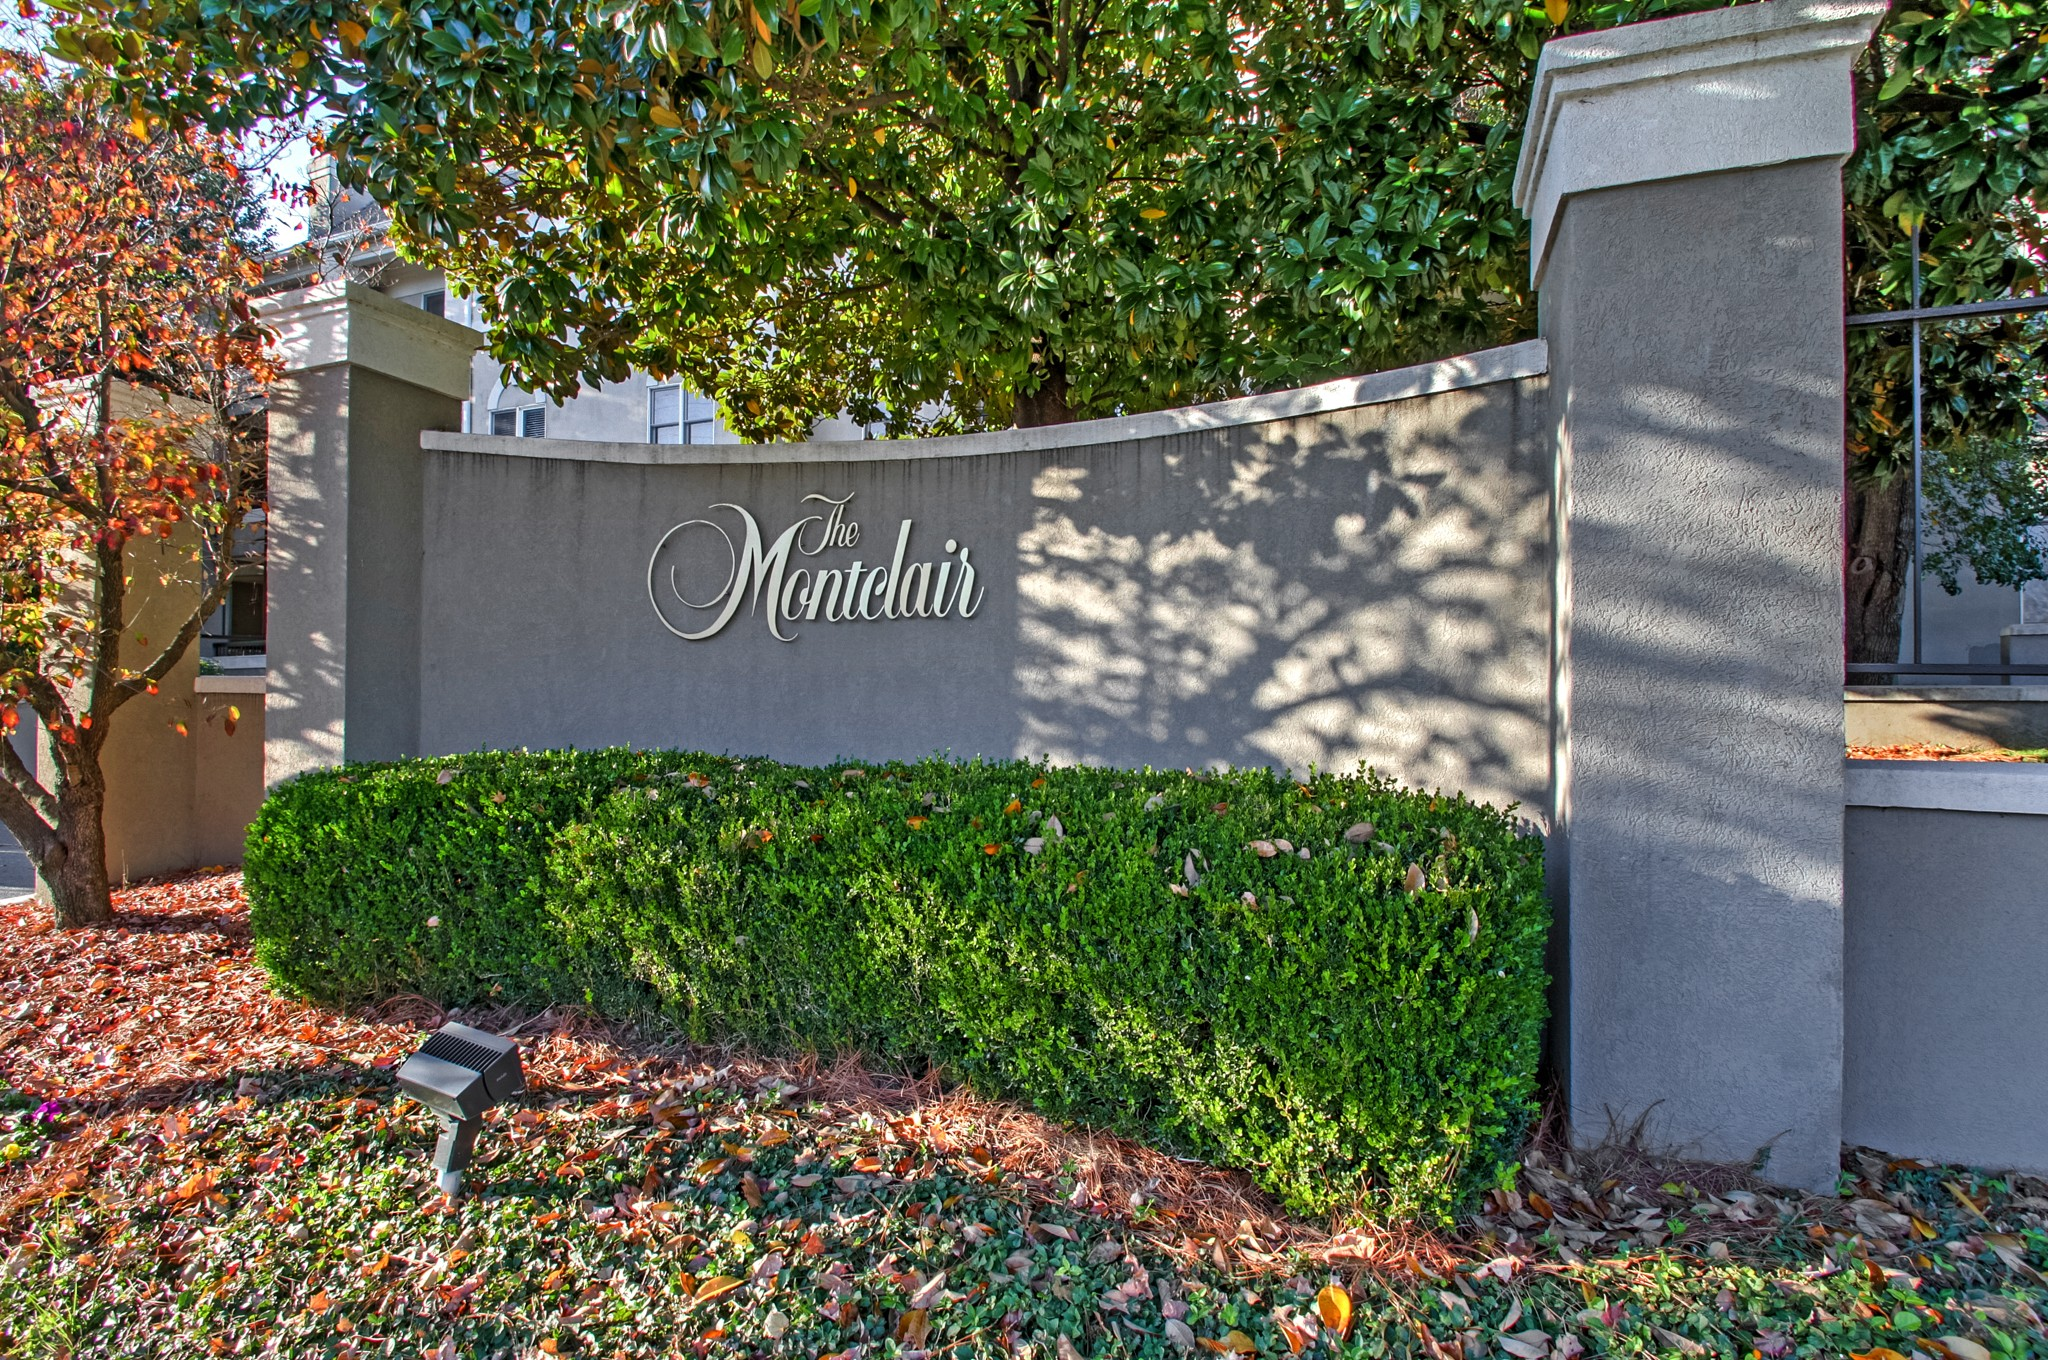 Location, location! One level living in the heart of West End. TOP FLOOR + END UNIT. Gas Fireplace. Owner suite w/Oversized L-shaped walk-in closet and safe. Under cabinet lighting.Double vanity and jacuzzi* Second bedroom has 2 closets. Separate Laundry/w side by side washer/dryer. Private balcony w/storage. Gated garage w/2 assigned spaces. Elevator. 9' ceilings. Fire sprinkler system. Extra Storage in garage. Courtyard. No showings til 12/19. Check out www.MaggieOdle.com